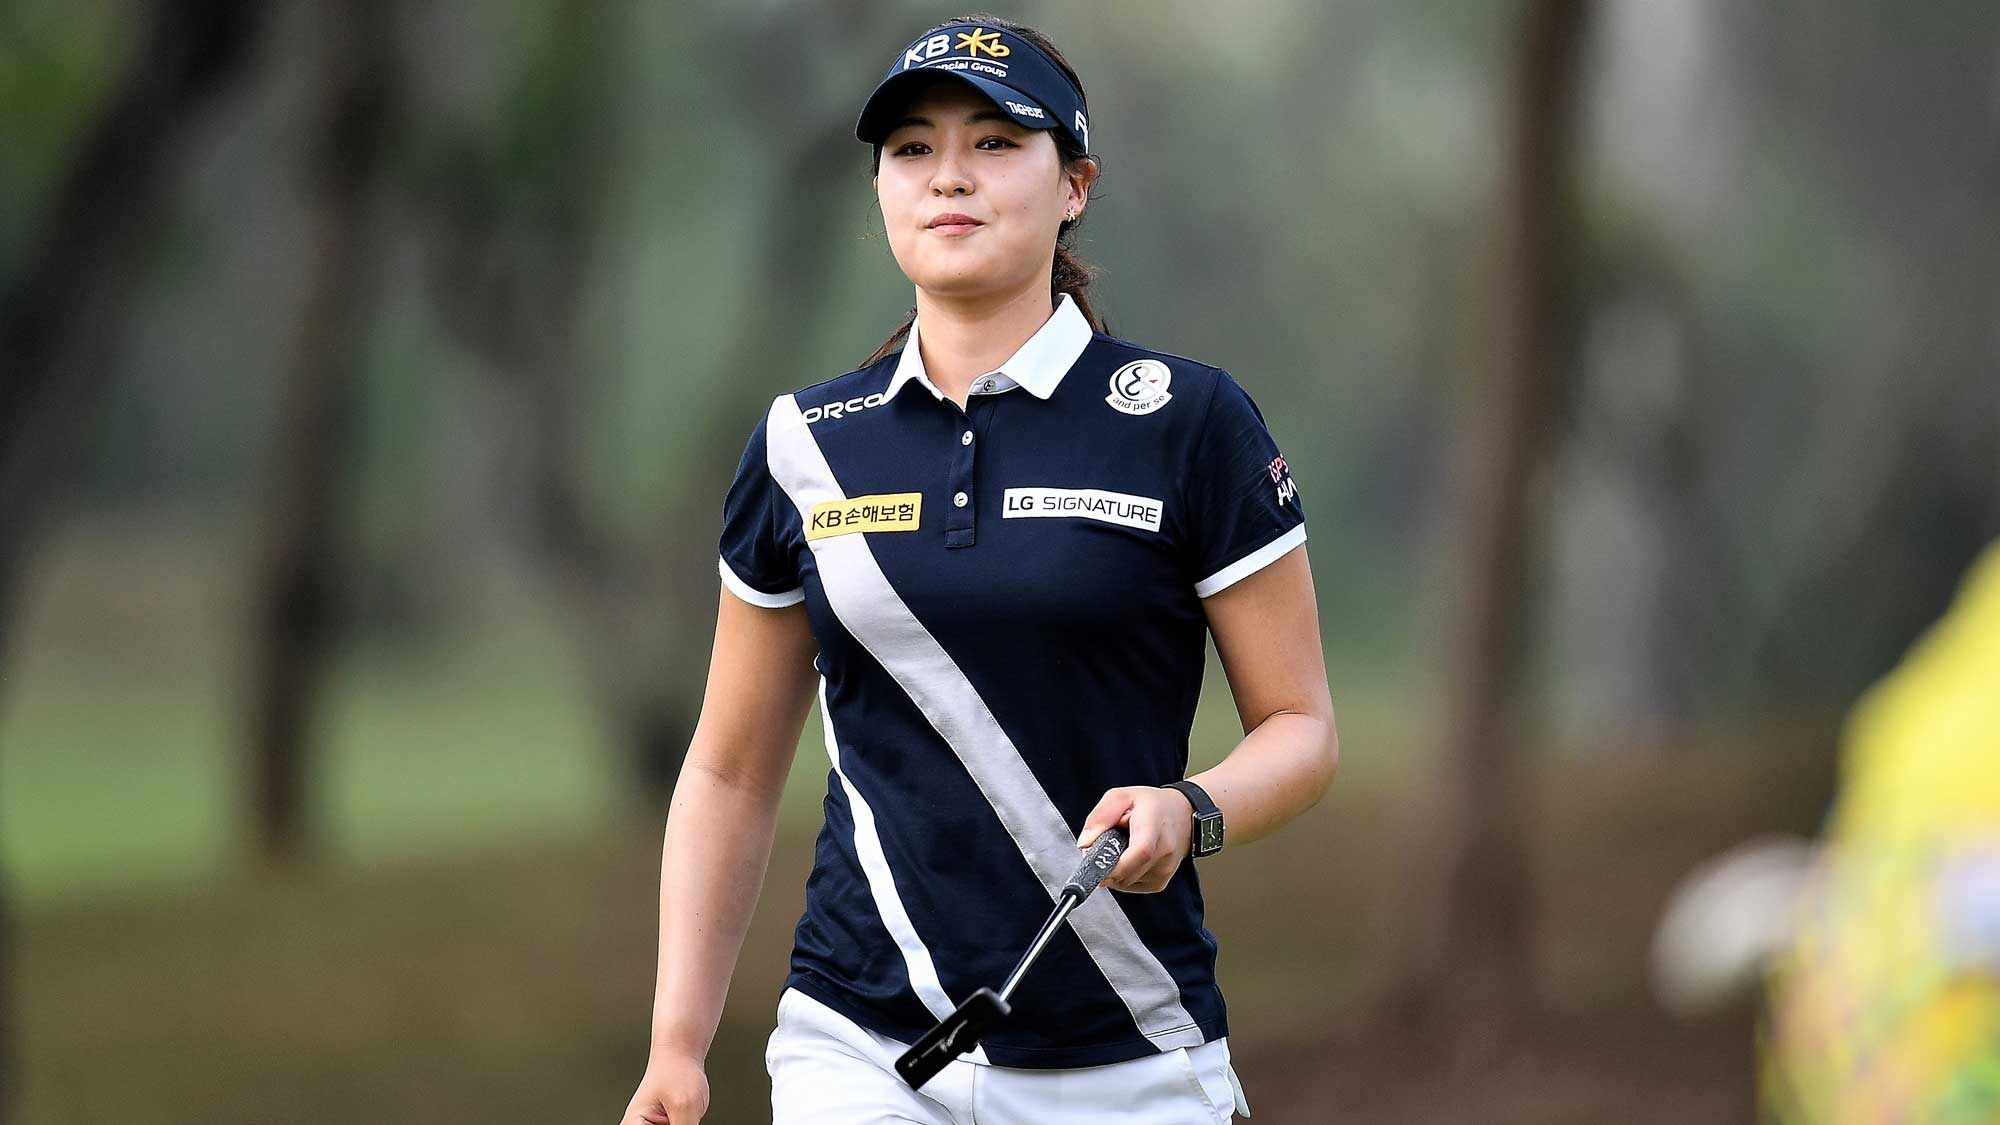 In Gee Chun on Day One in Thailand